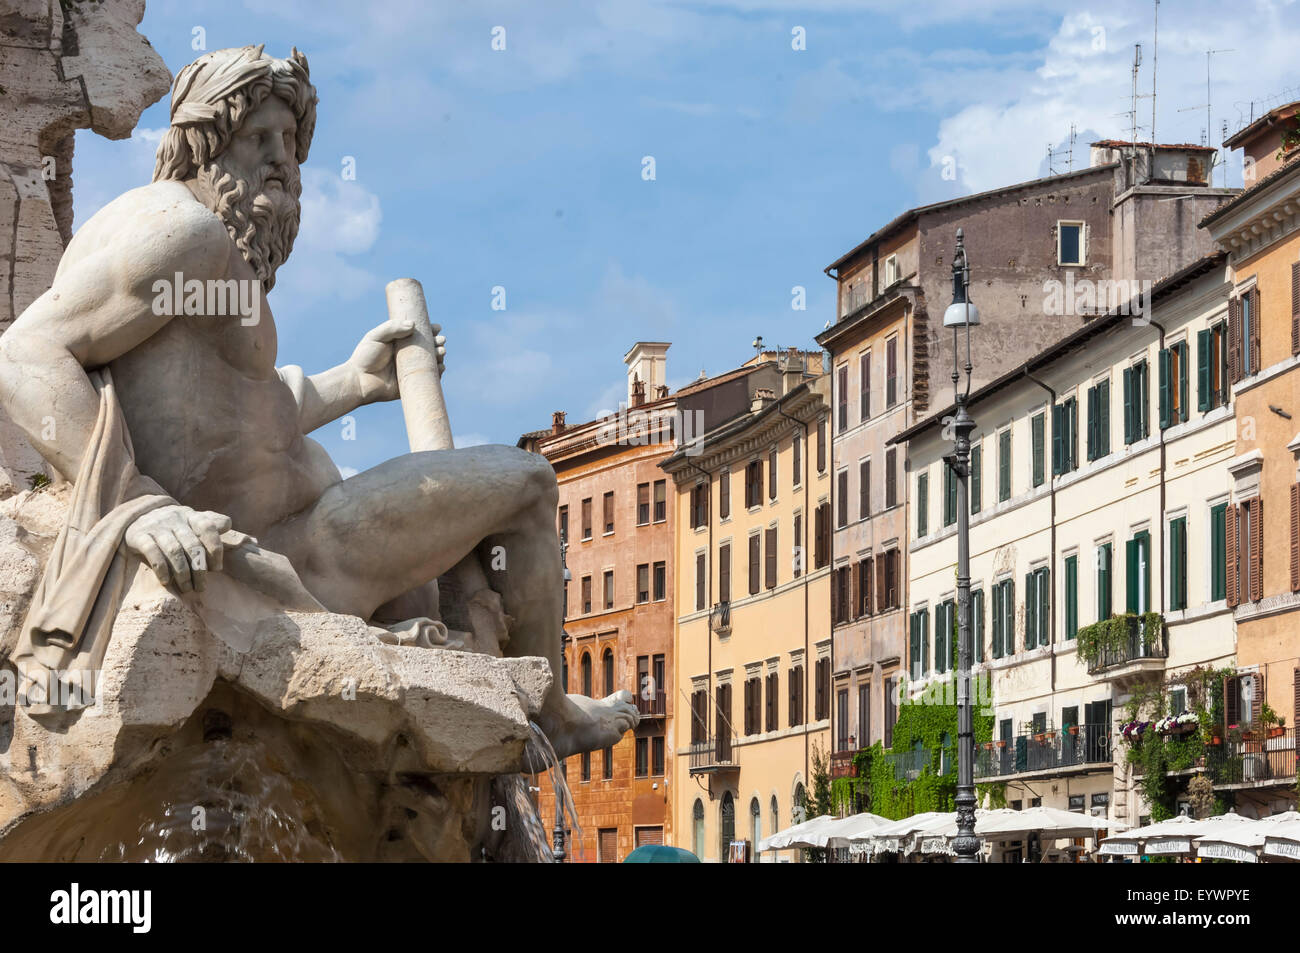 Detail of the Fountain of the Four Rivers, Piazza Navona, Rome, Lazio, Italy, Europe - Stock Image